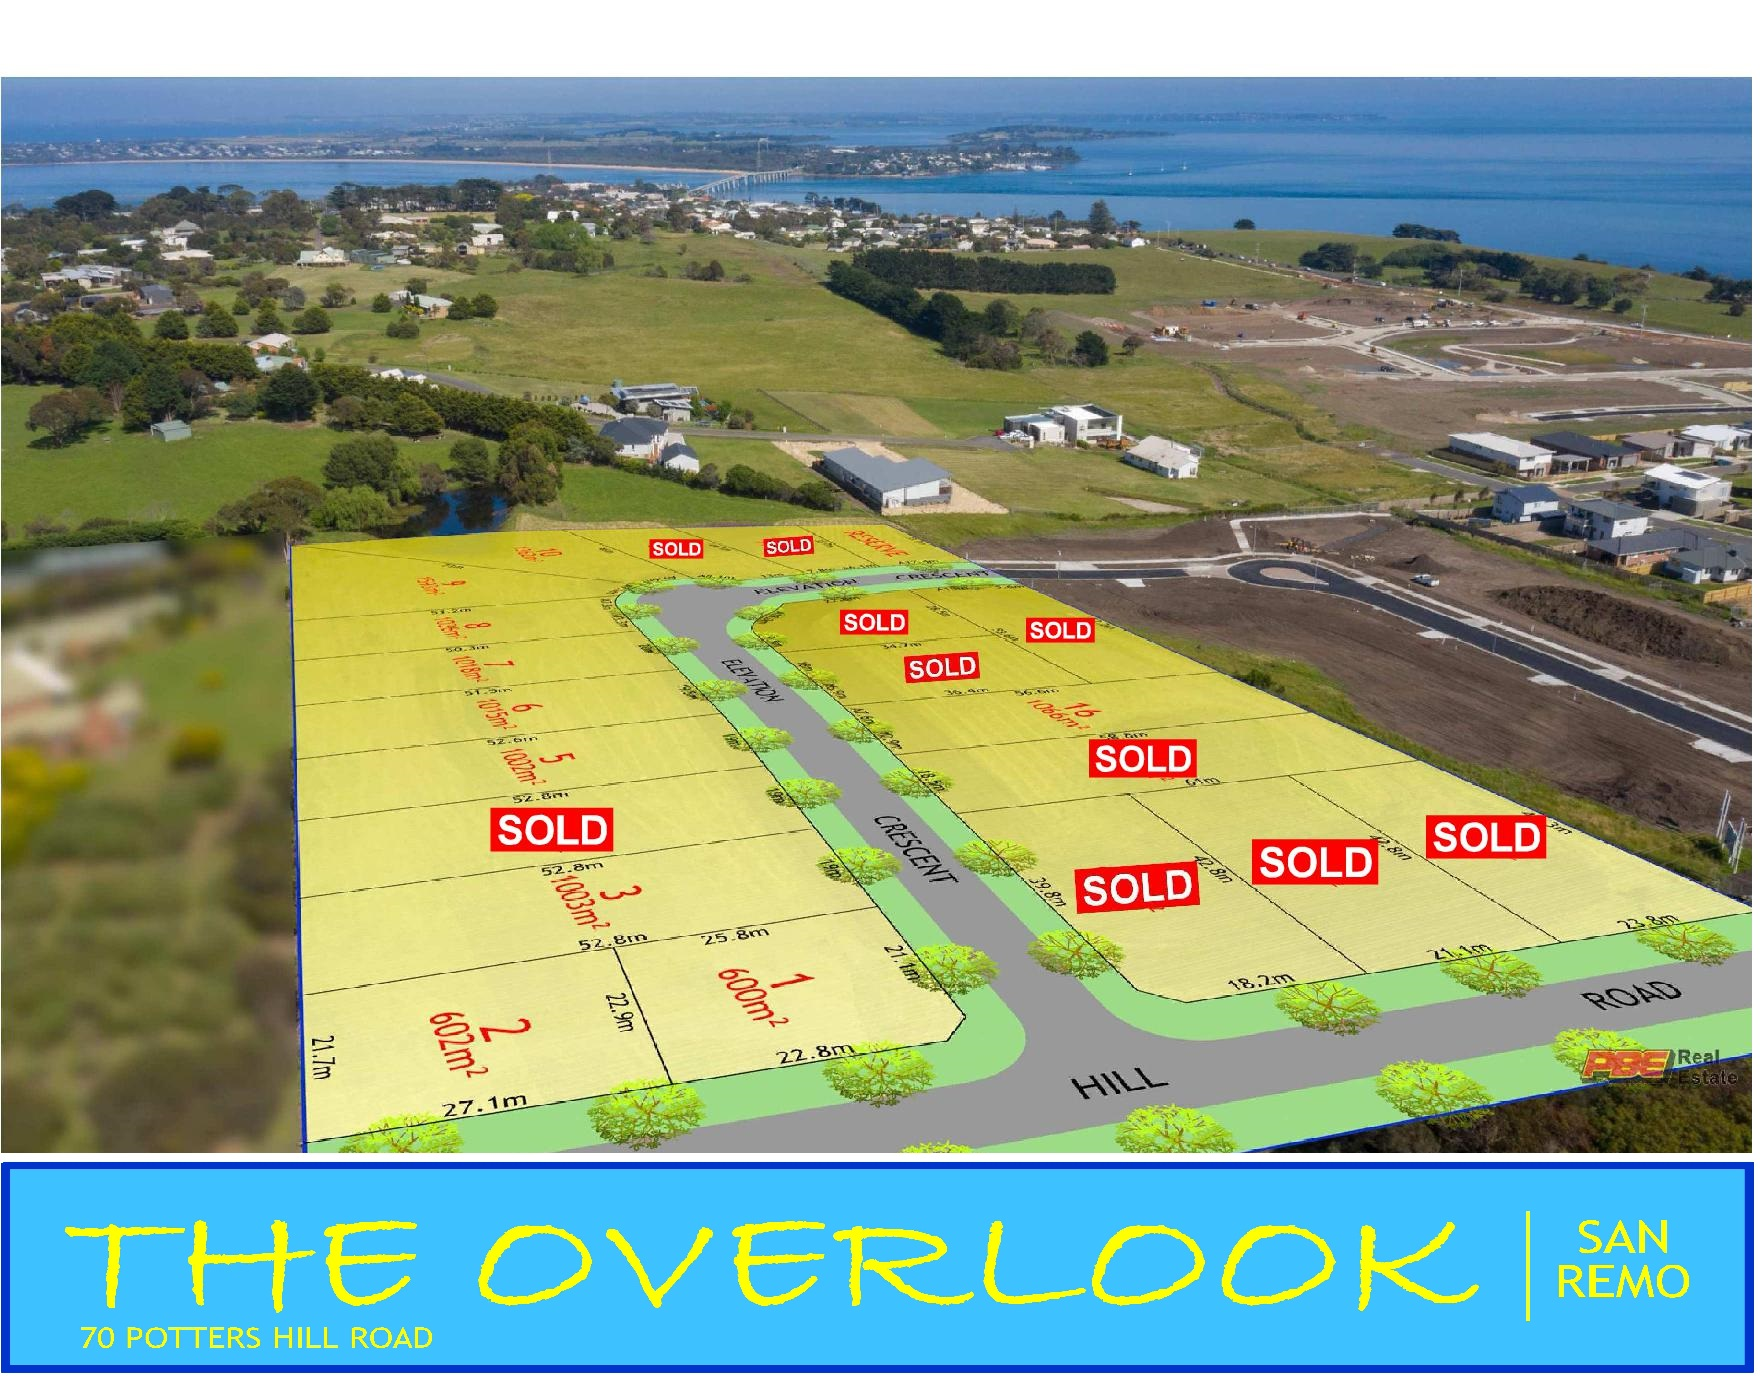 Lot 19/70 Potters Hill Road SAN REMO